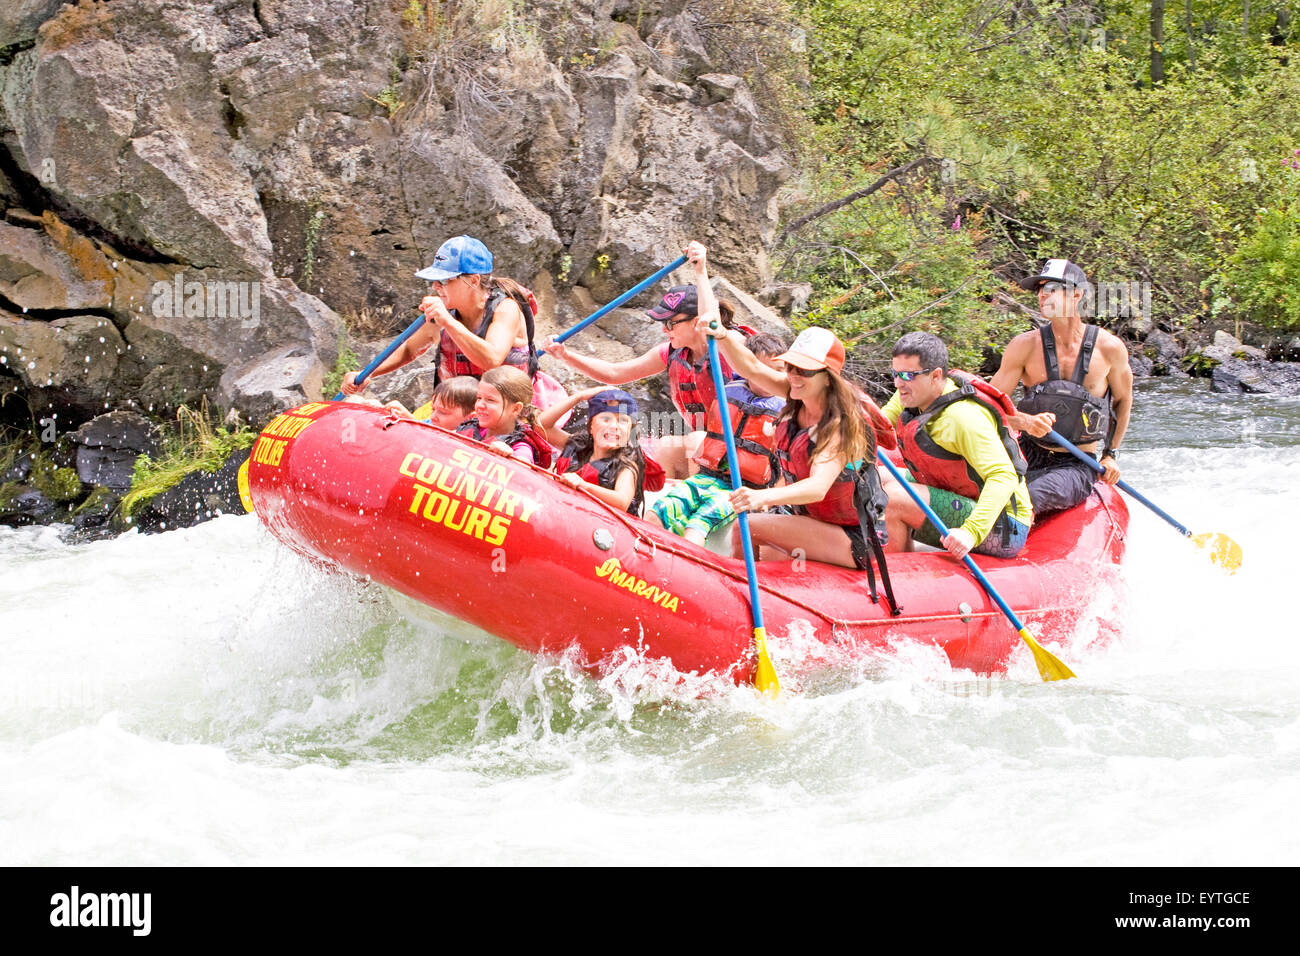 Whitewater rafters during the summer onBig Eddy Falls on the Deschutes River near Bend, Oregon - Stock Image